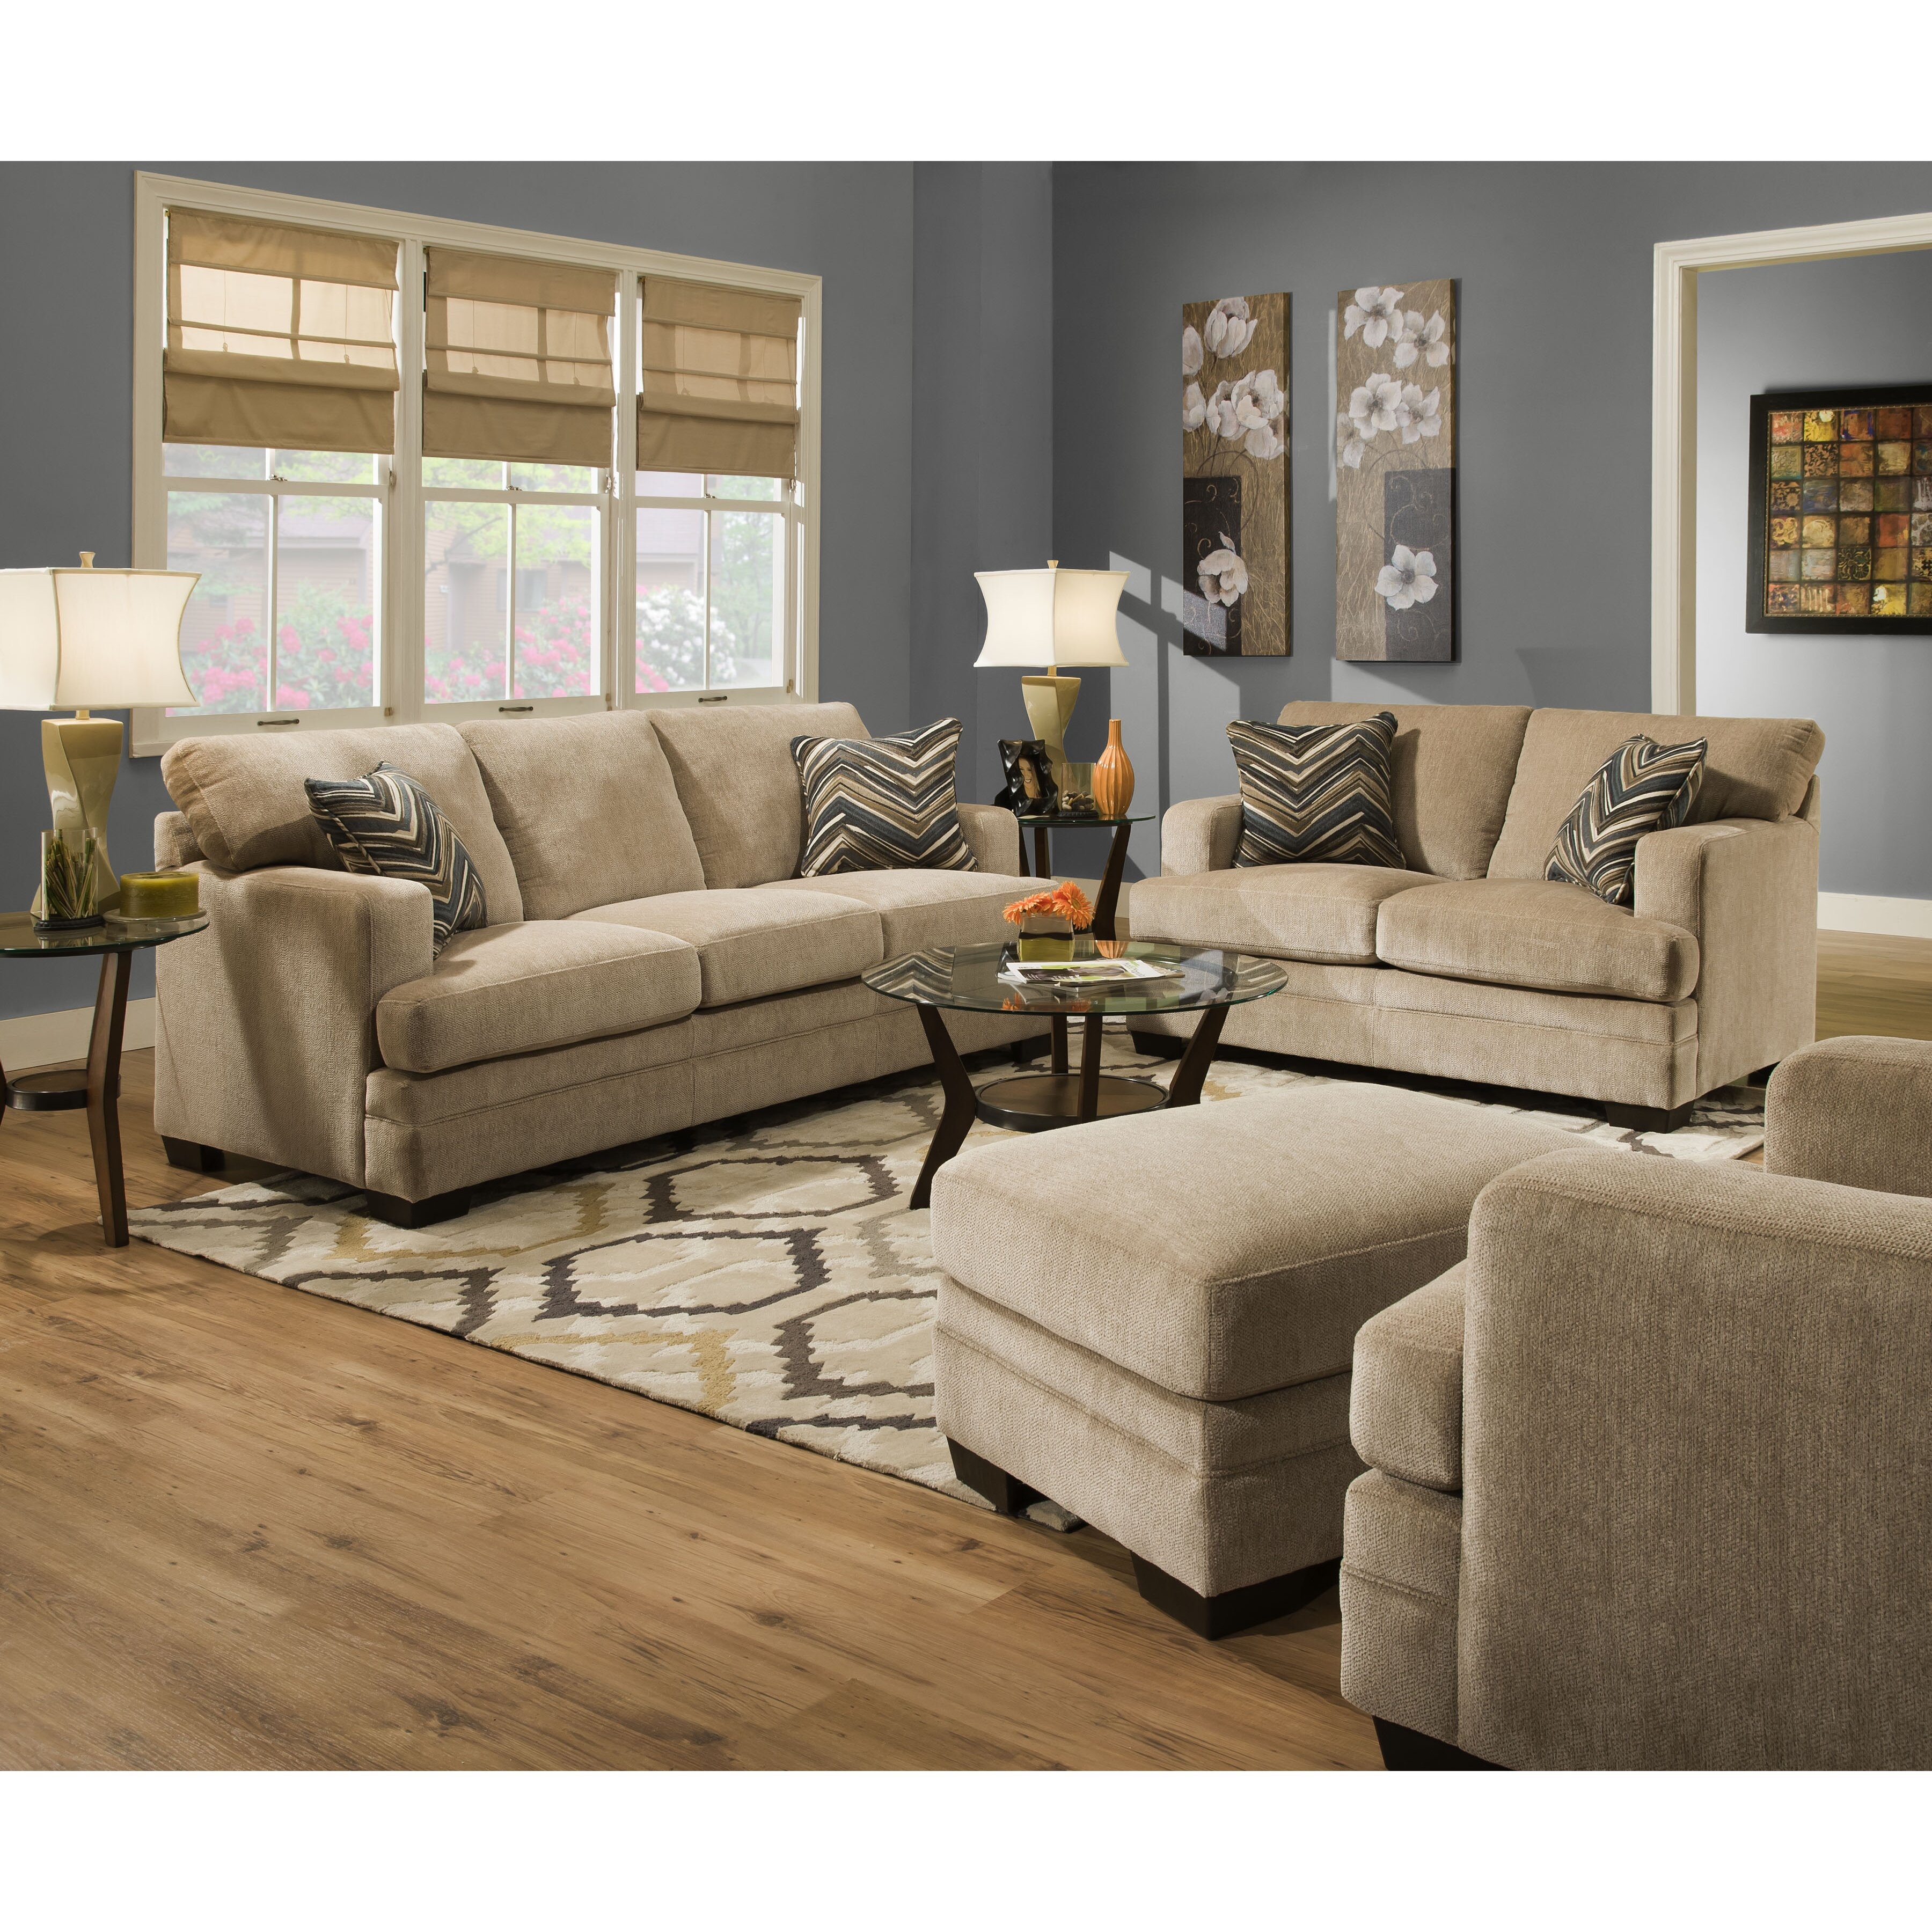 Simmons Upholstery Soho Espresso Living Room Set 9515 By Simmons